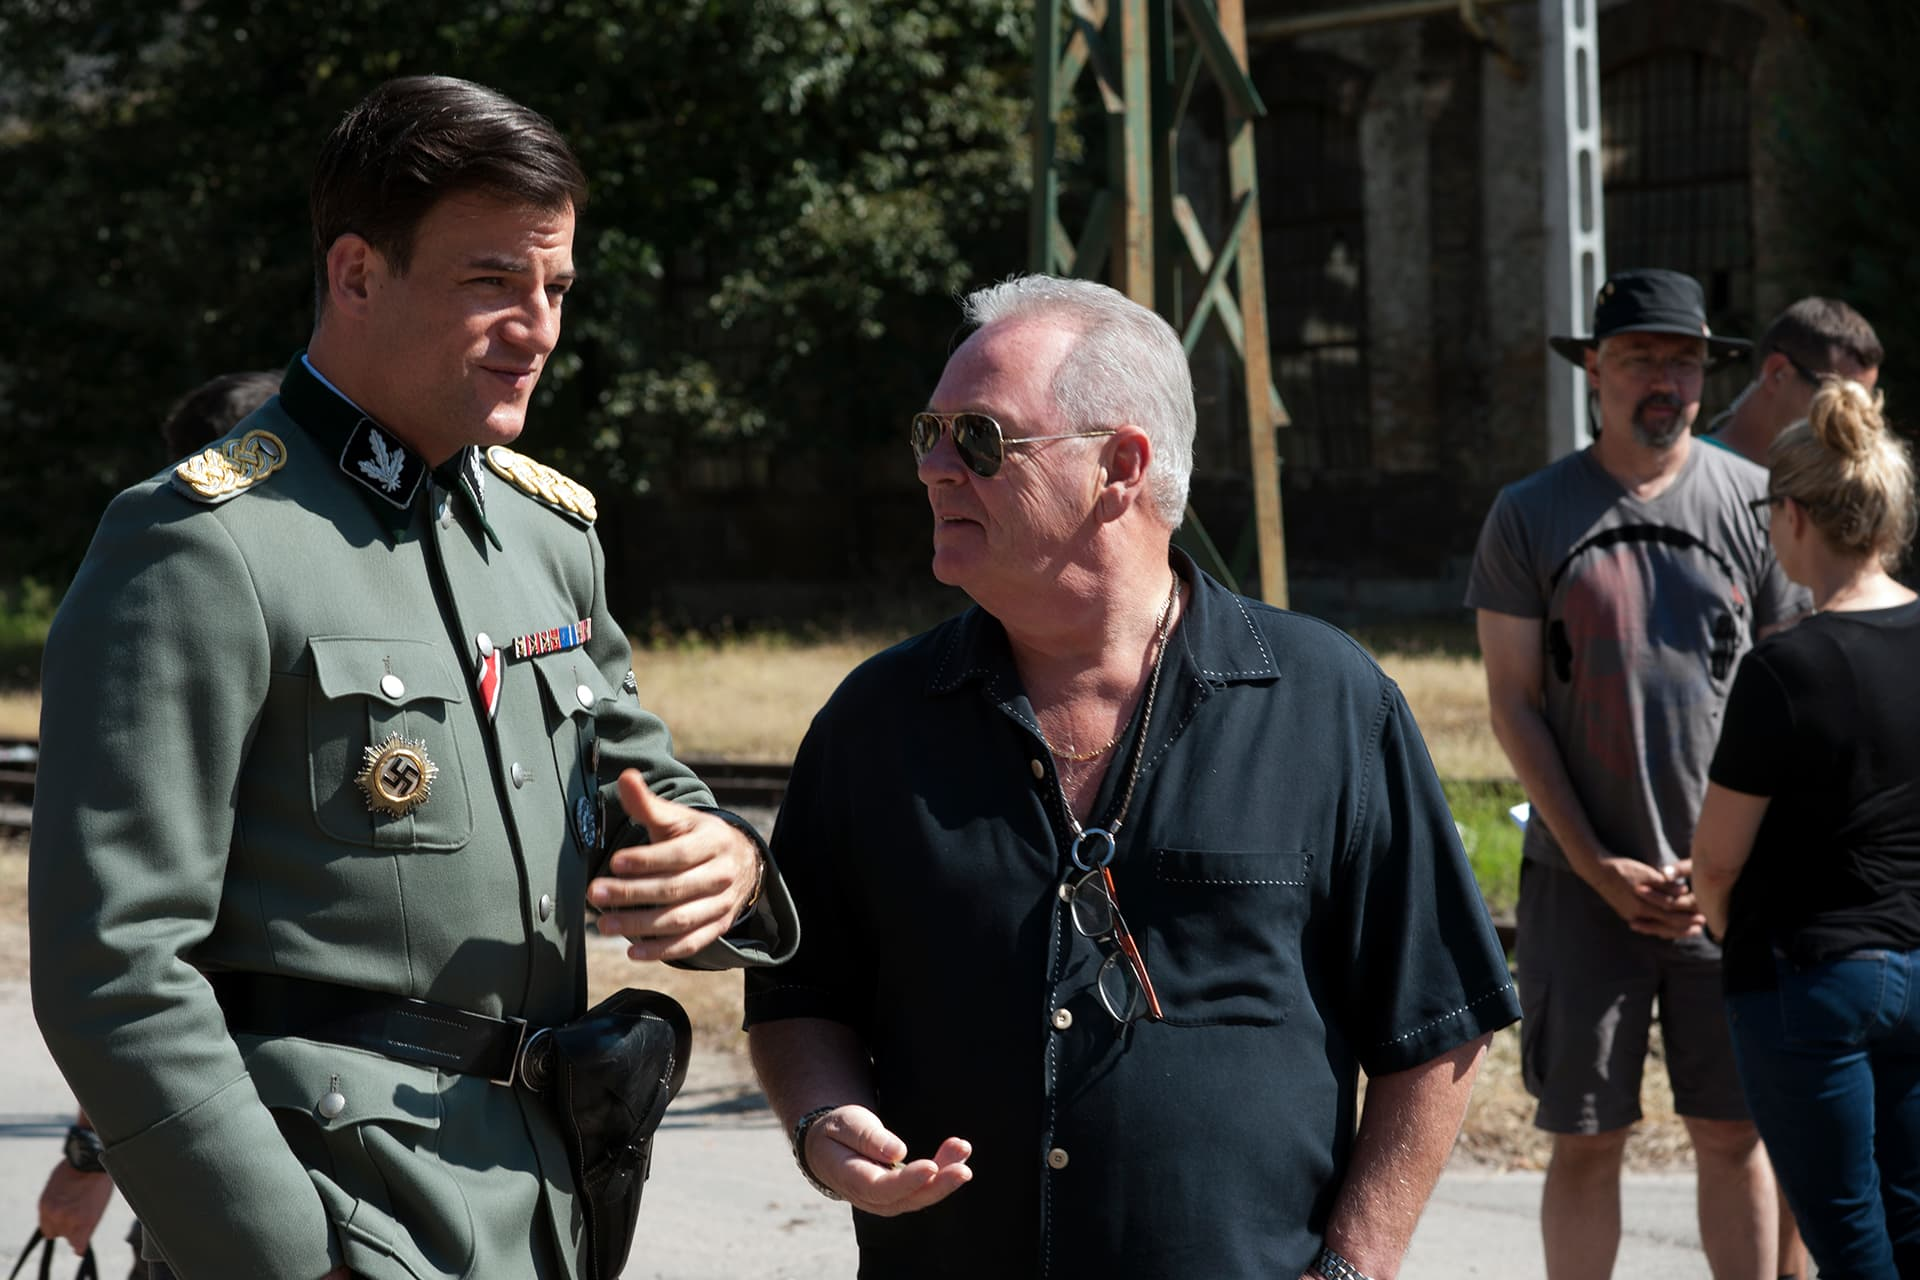 Behind the scenes on the set of X Company Season 3 with Torben Liebrecht (Faber) and Producer John Calvert.